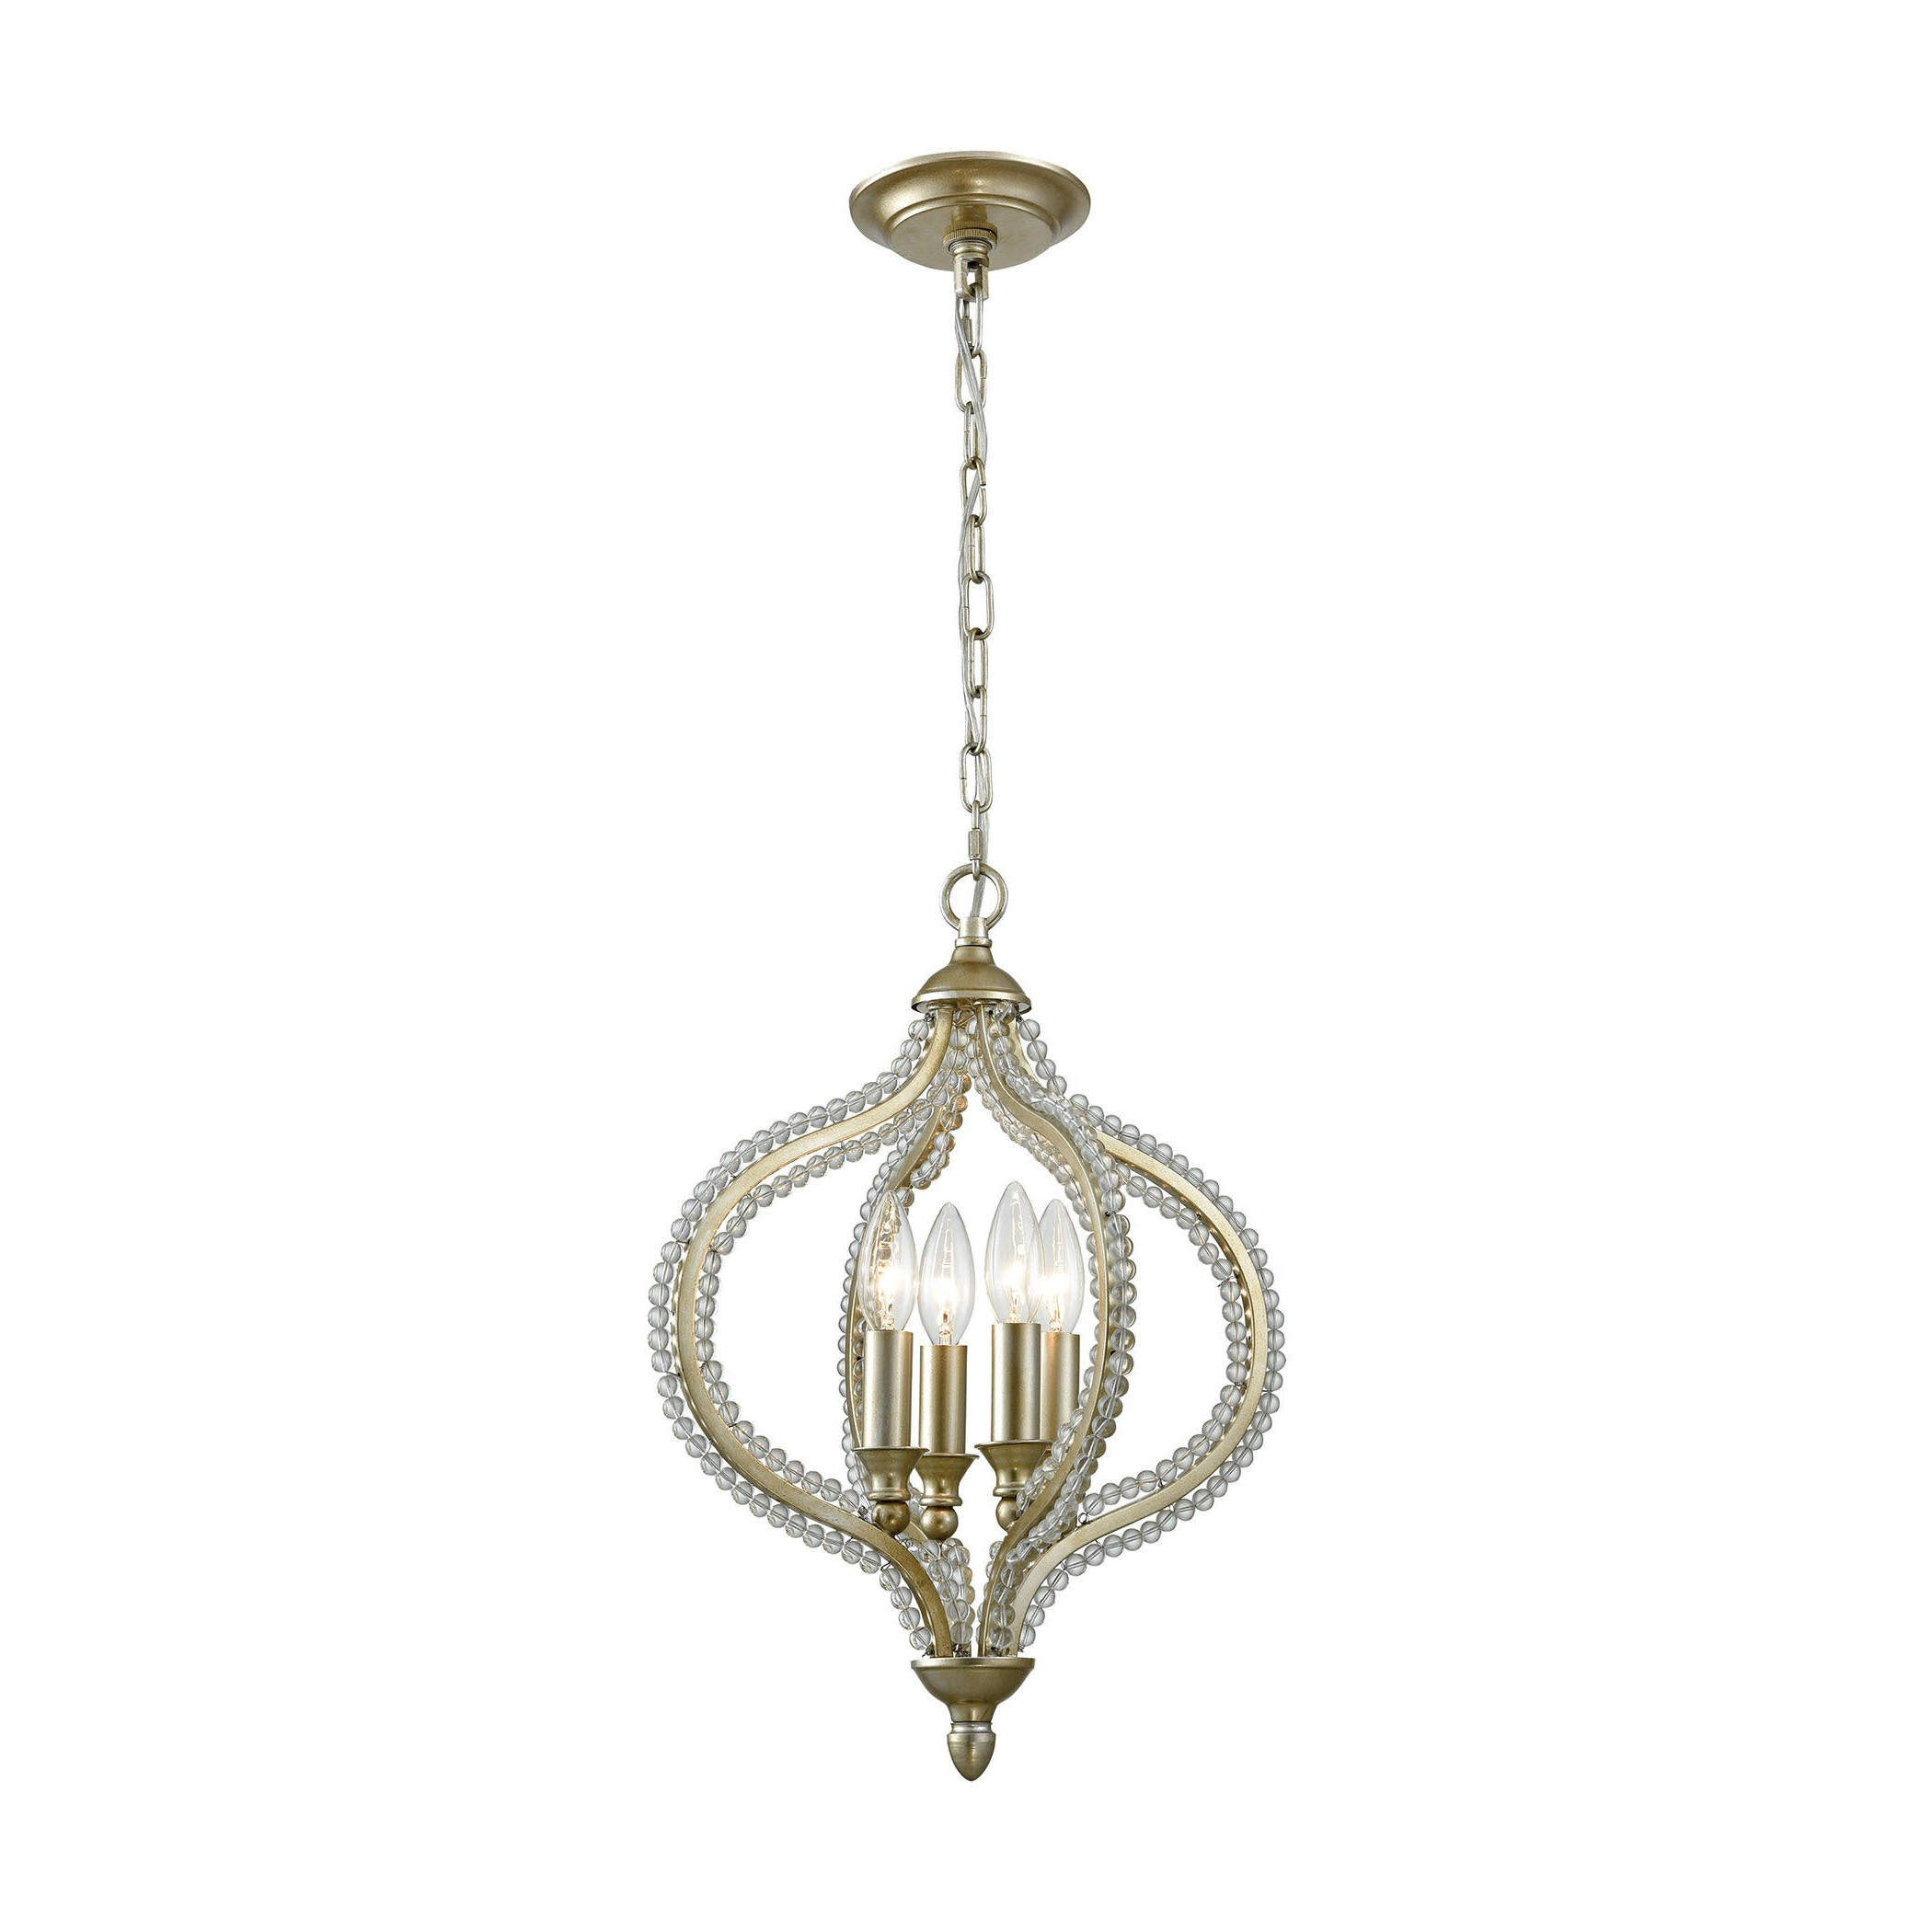 Bennington 4-Light Pendant, Aged Silver intended for Most Current Bennington 4-Light Candle Style Chandeliers